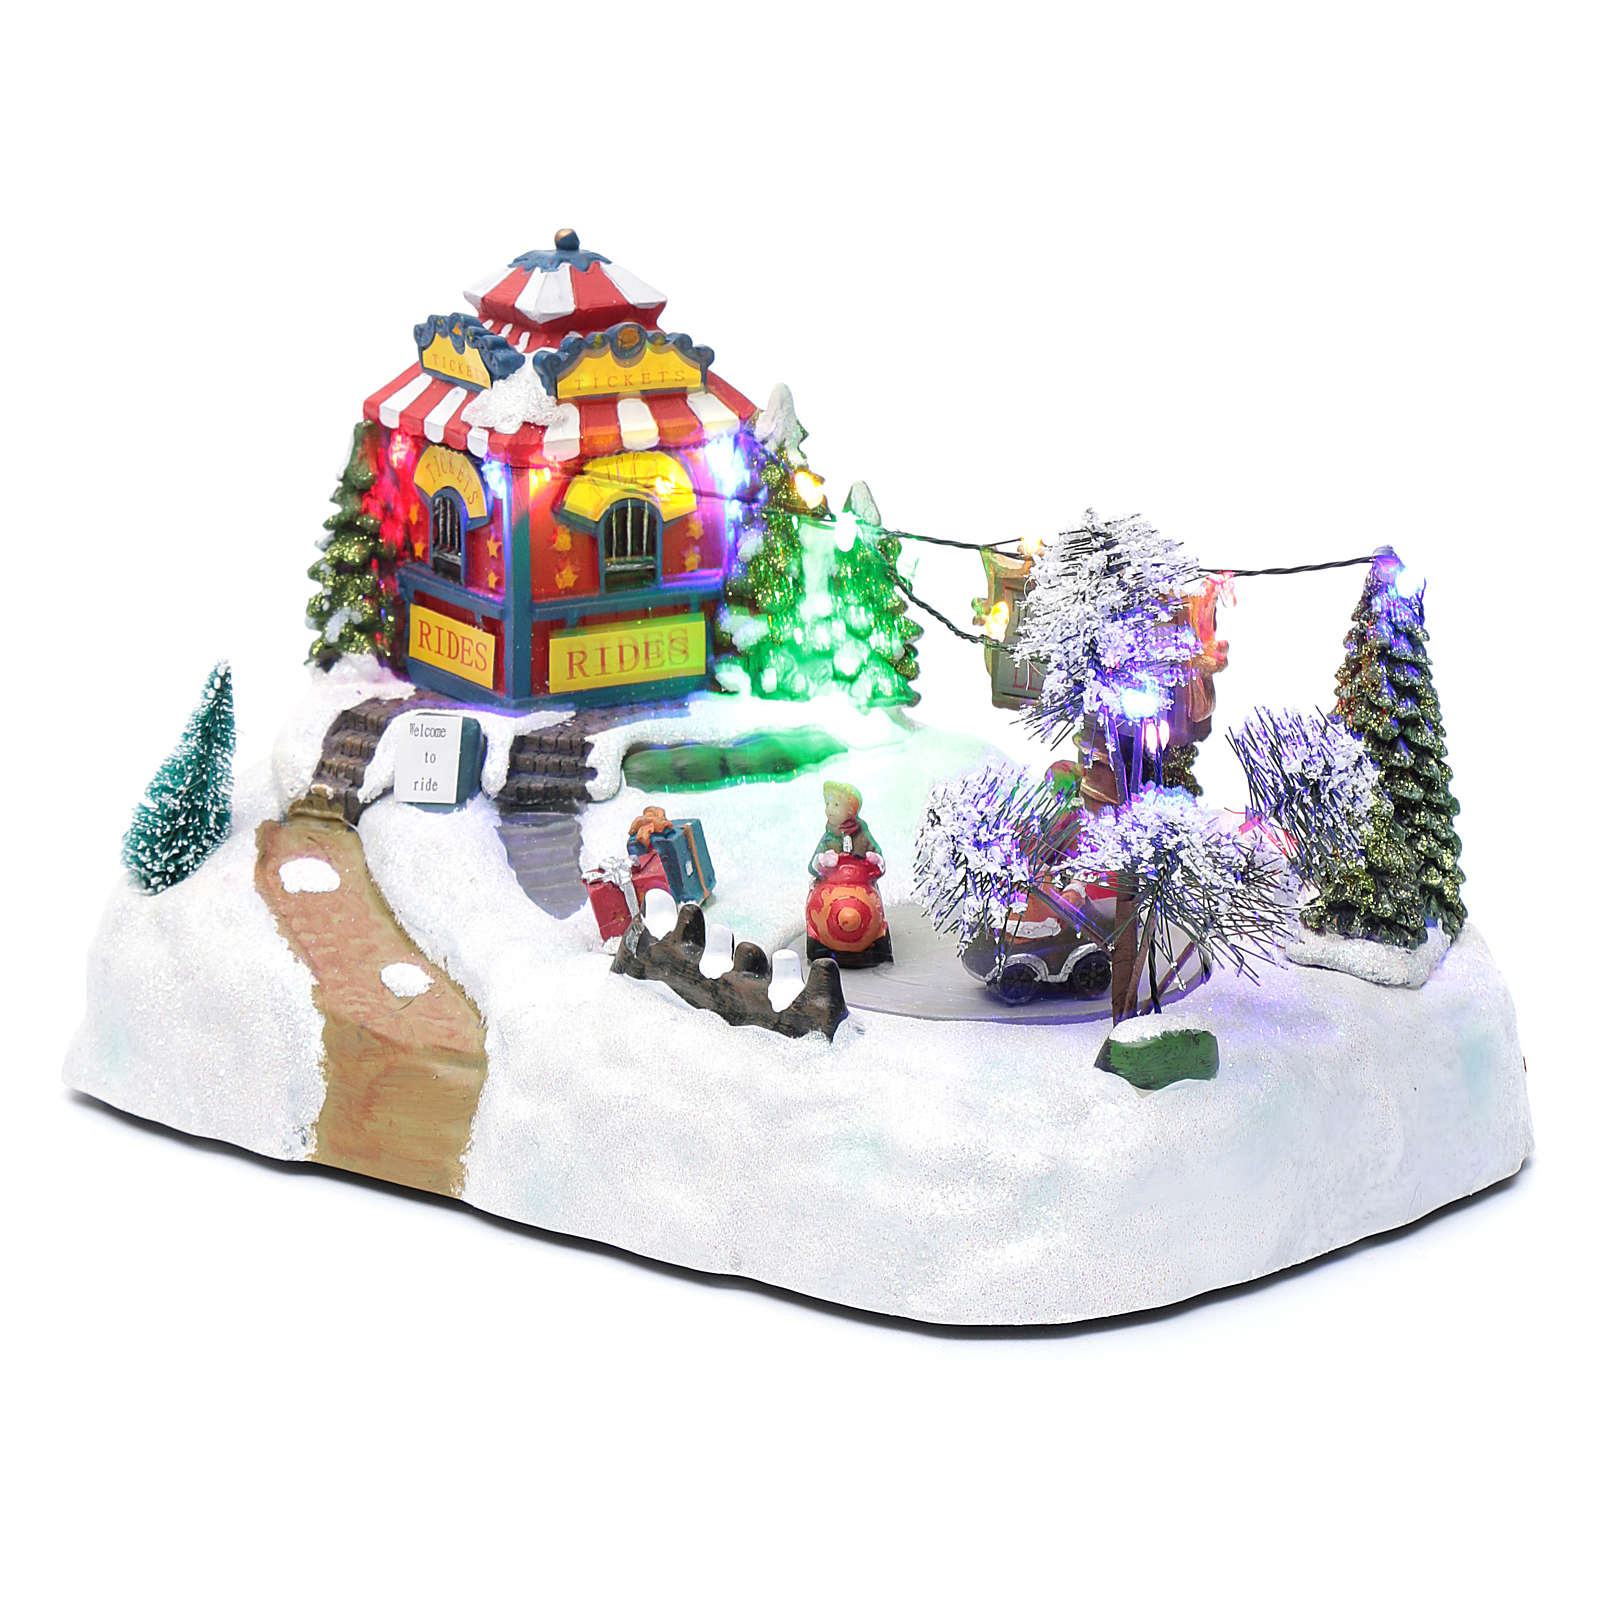 Moving christmas village with playground, led lights and music 20x25x15 cm 3